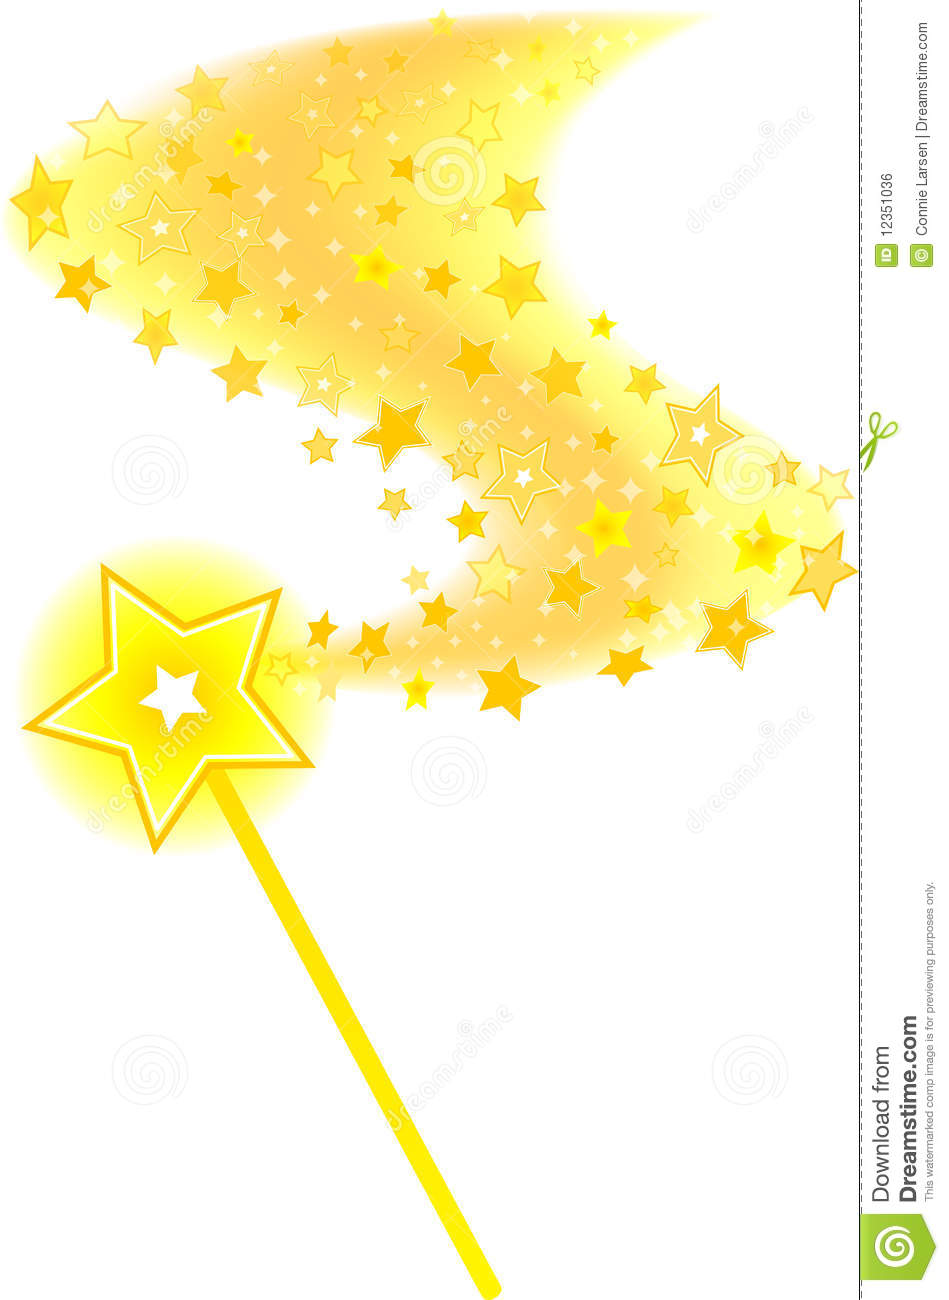 magic wand star trail royalty free stock image